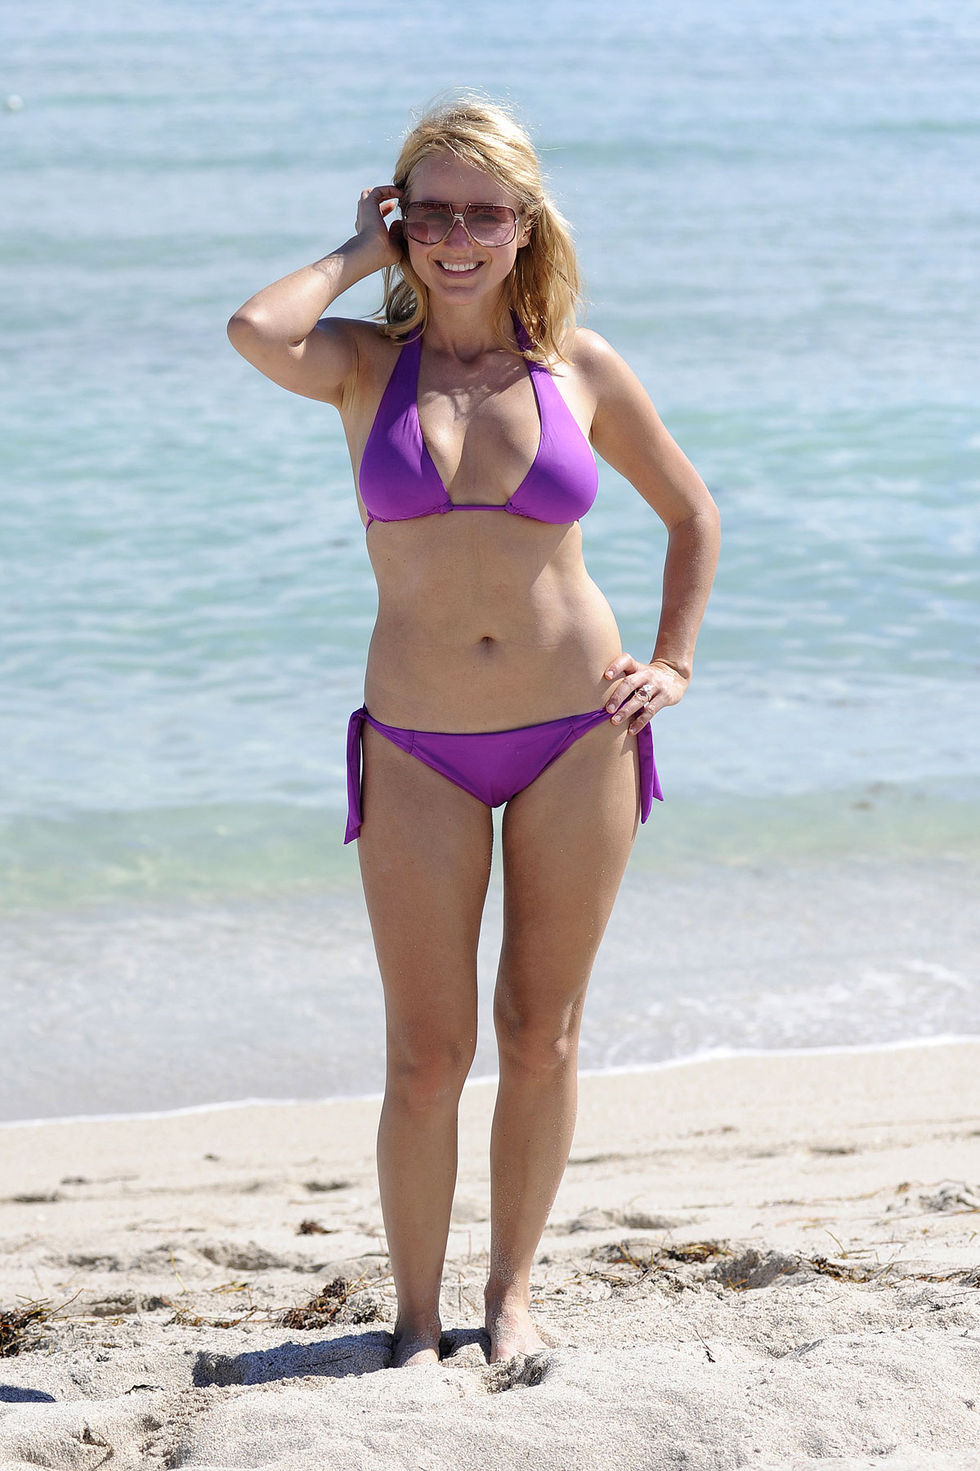 jewel-kilcher-in-bikini-at-the-beach-in-miami-01